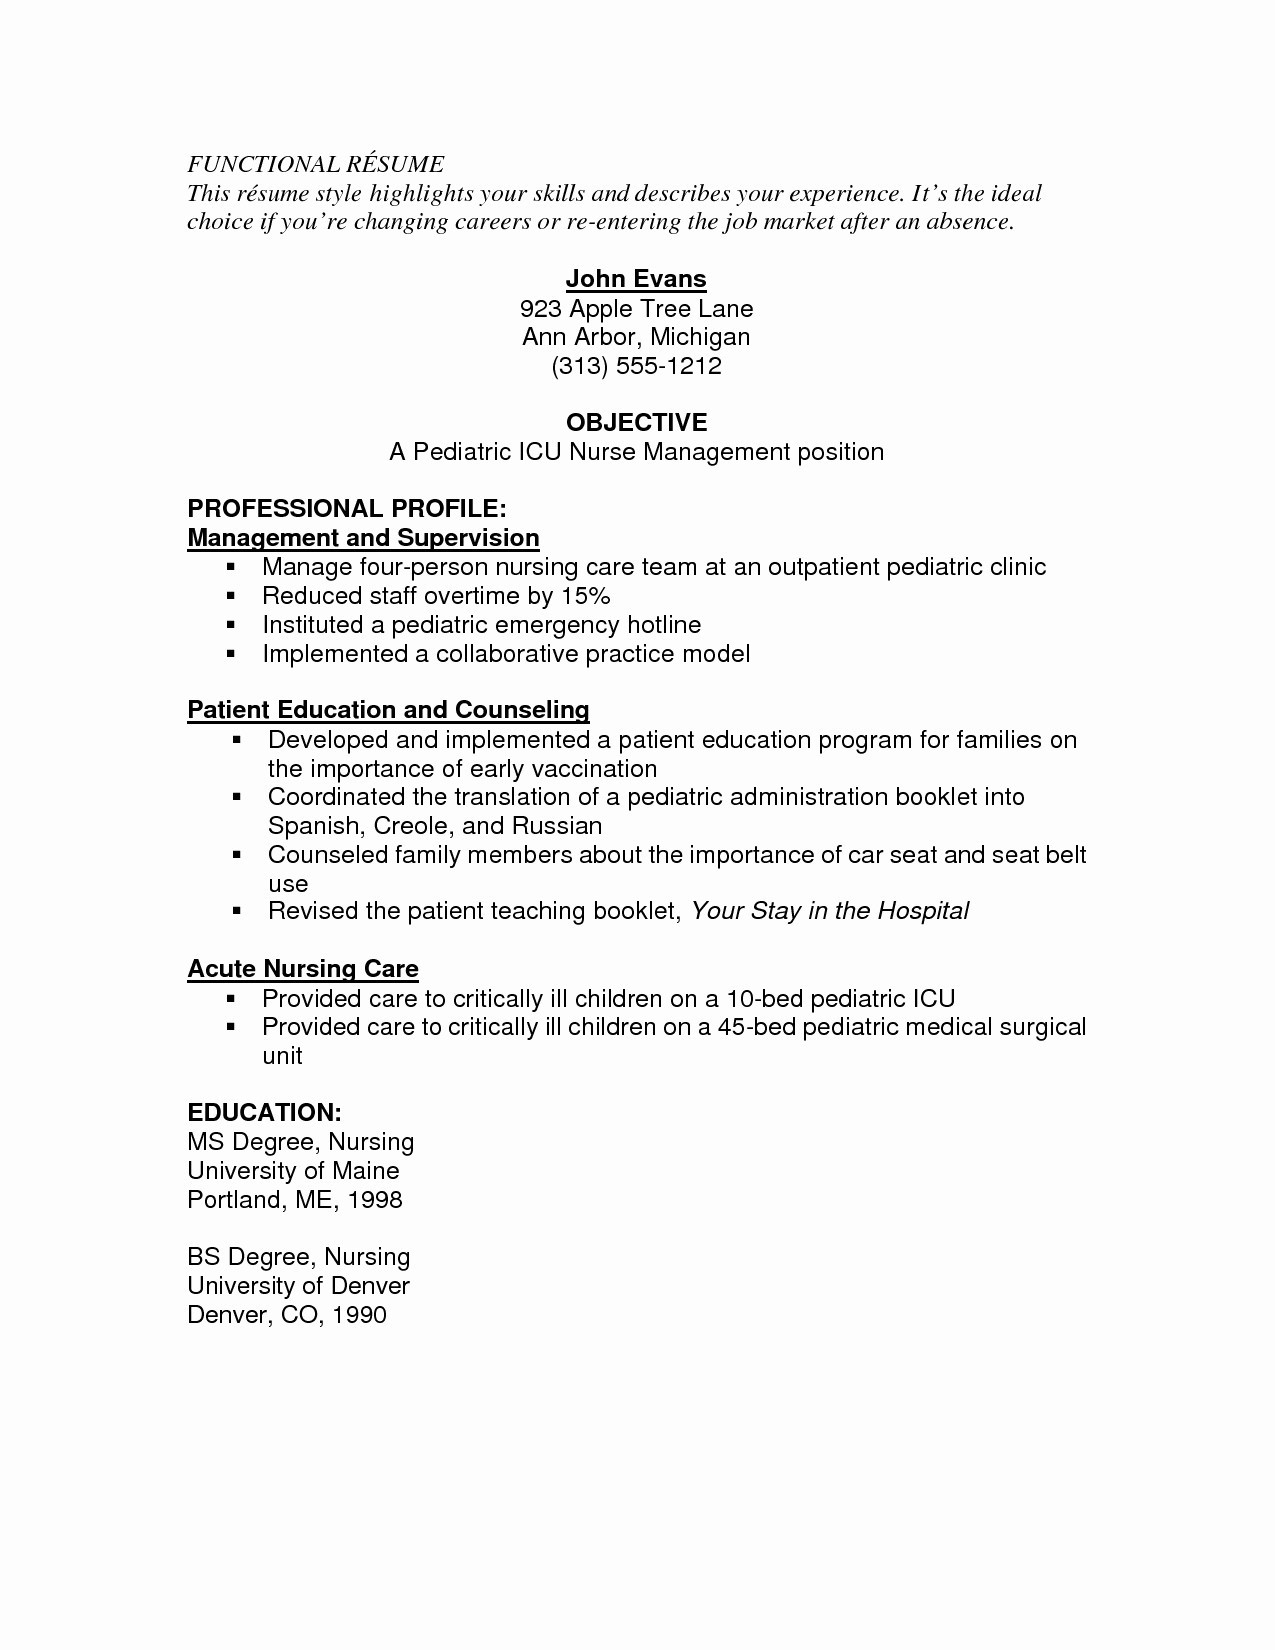 medical surgical nurse resume Collection-Medical Surgical Nurse Resume 6-t